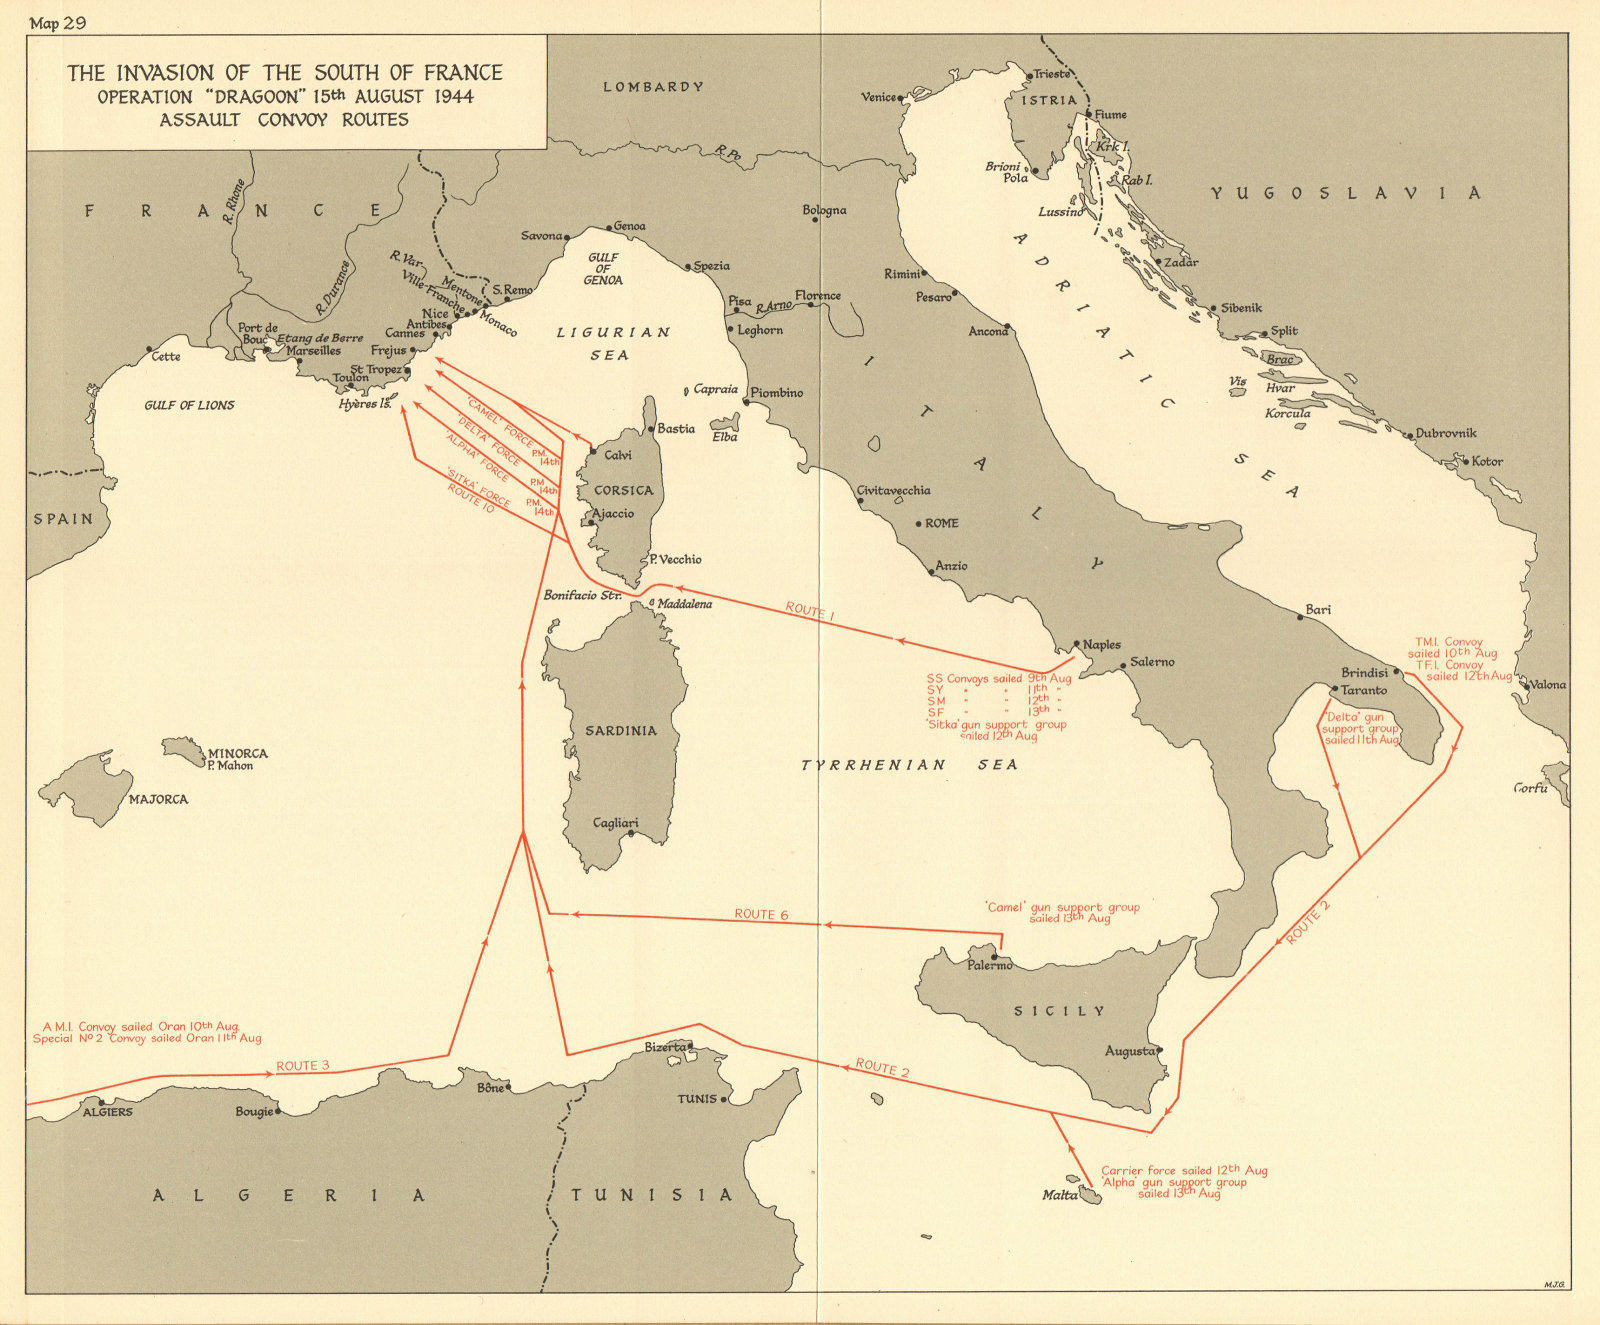 Associate Product Operation Dragoon 15 August 1944. Assault. Invasion of South of France 1961 map